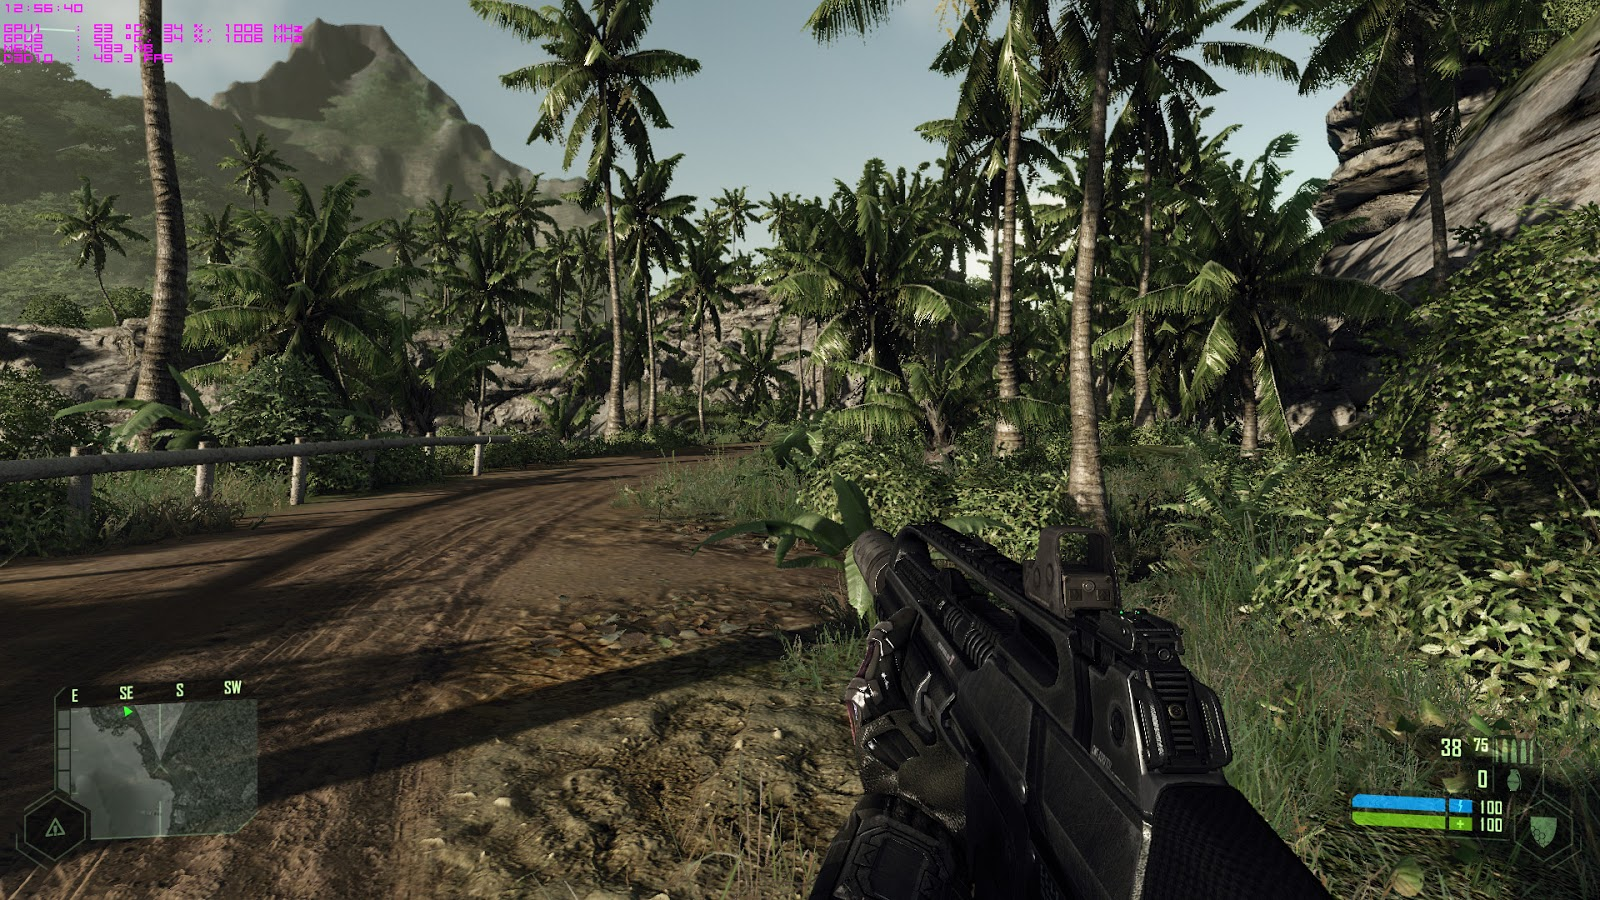 Crysis1 GTX680SLI - crysis ANTHOLOGY 2007-2011 PC